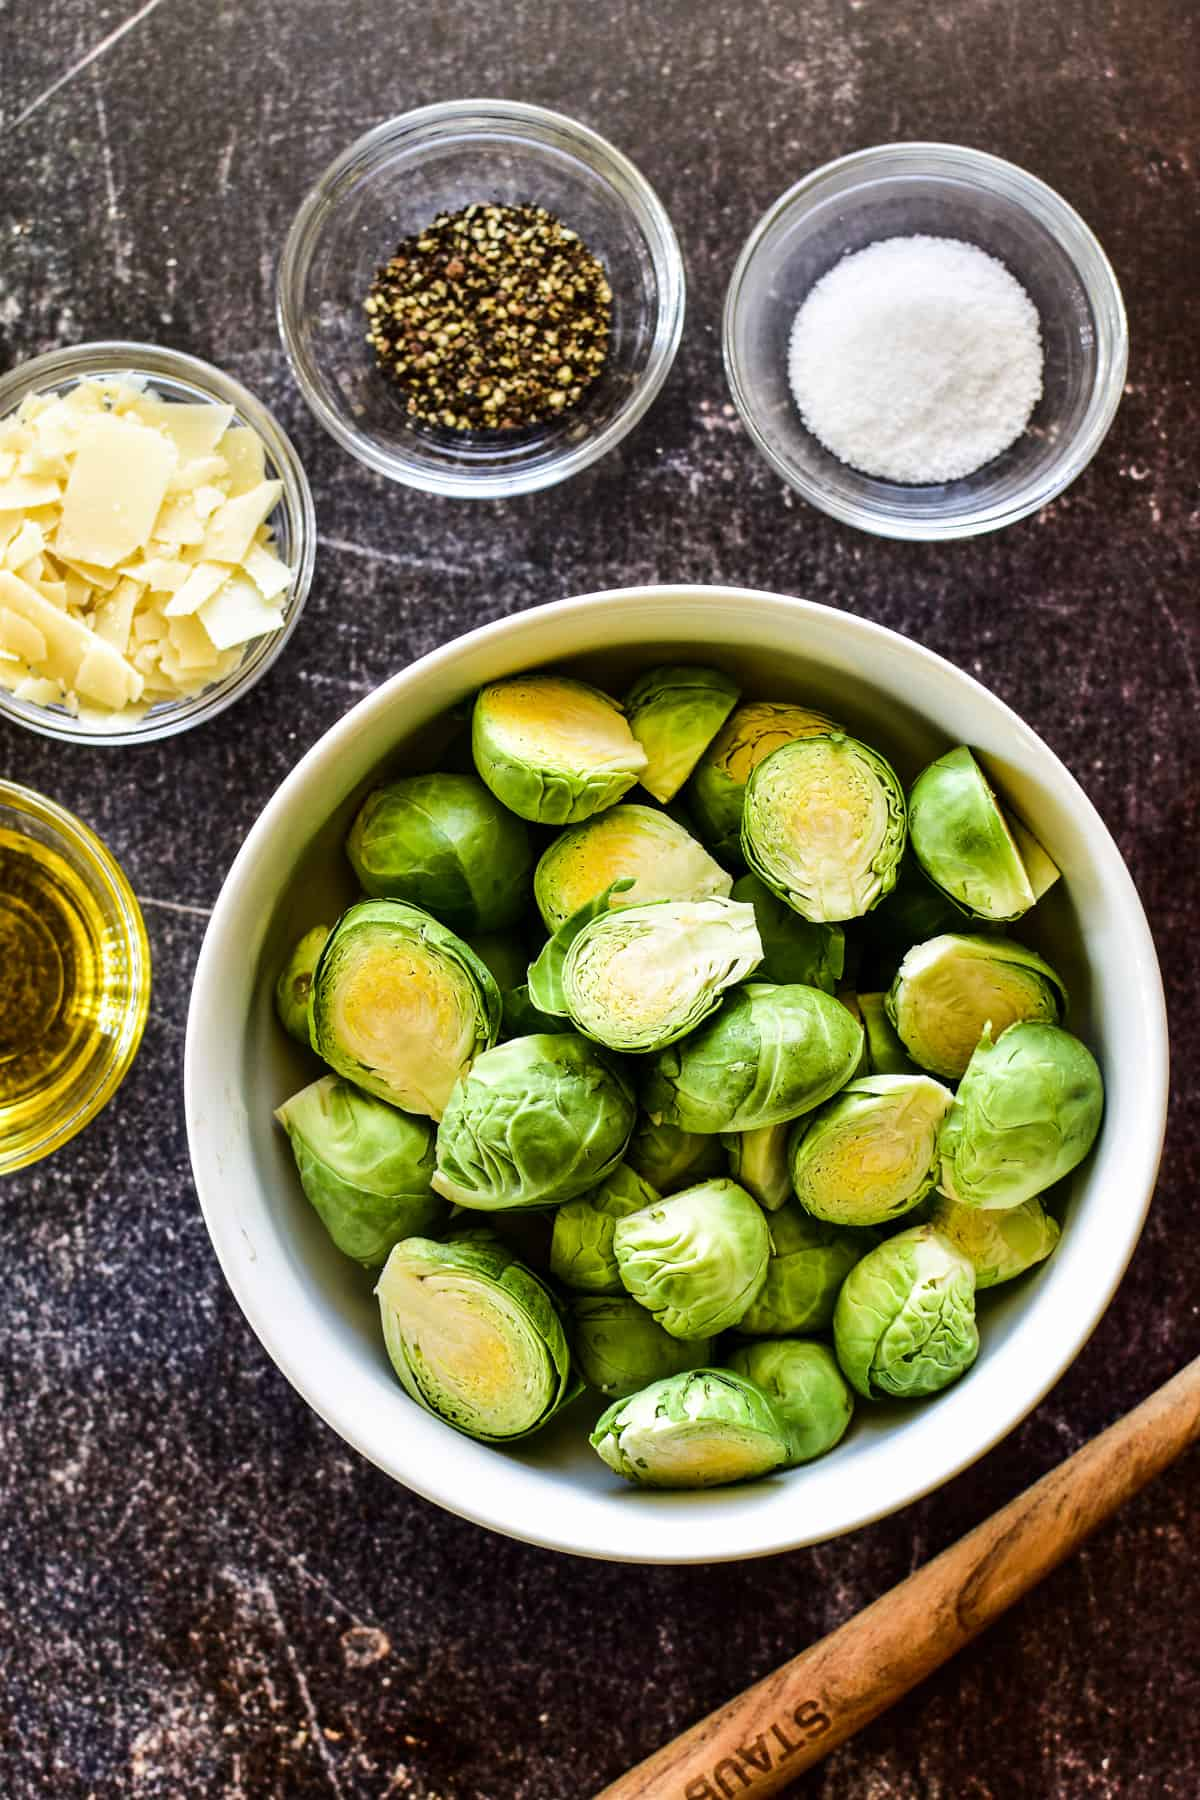 Ingredients for Sauteed Brussel Sprouts